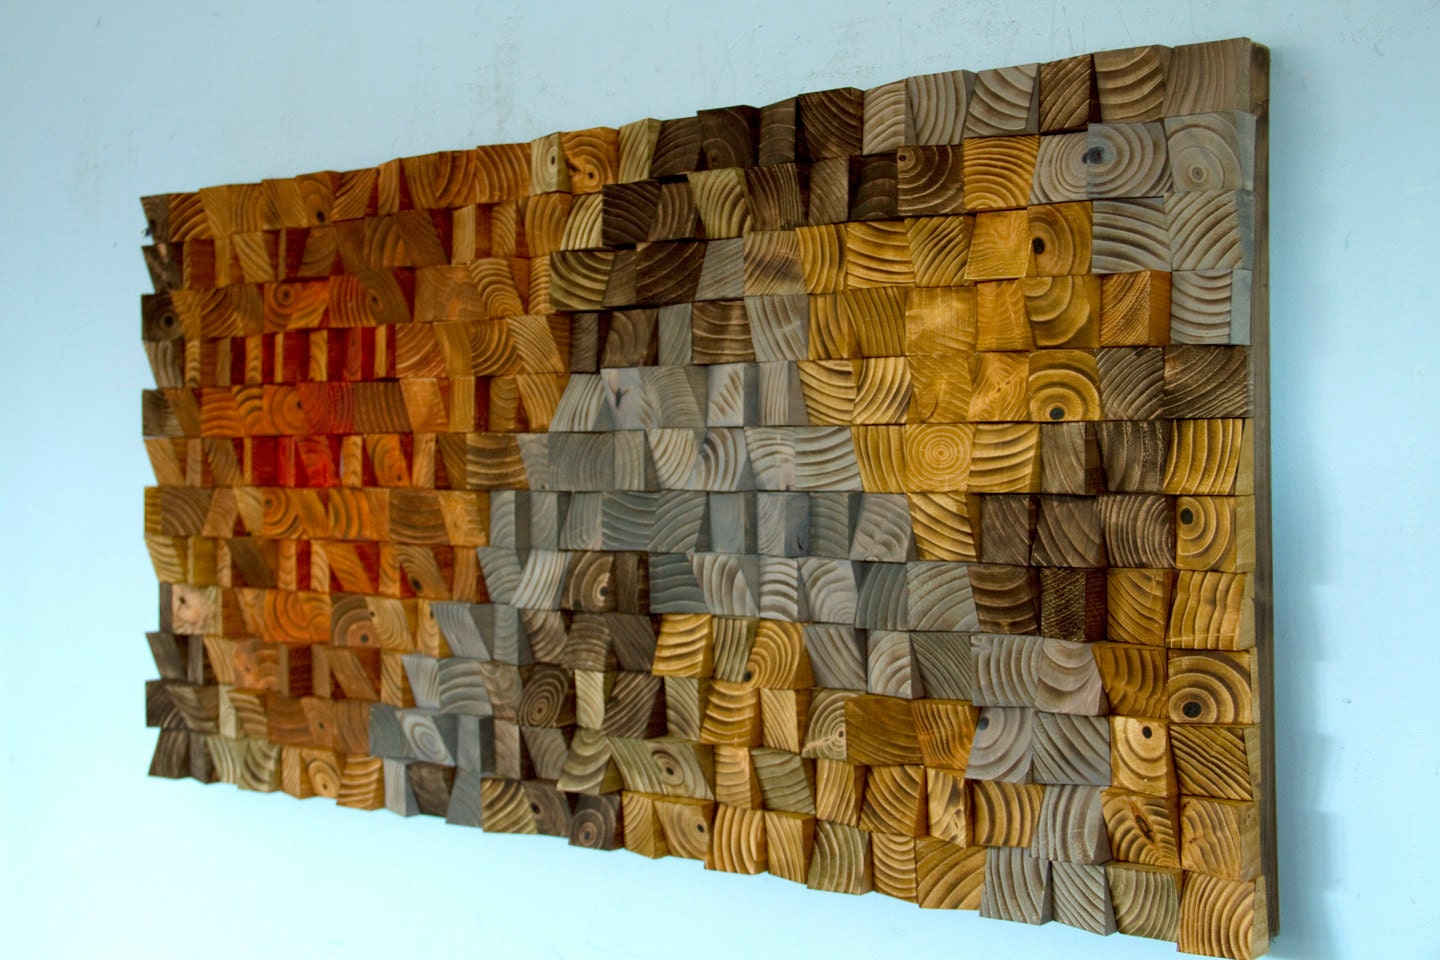 Rustic Wood Wall Art Abstract Wood Art Sculpture Reclaimed Wood